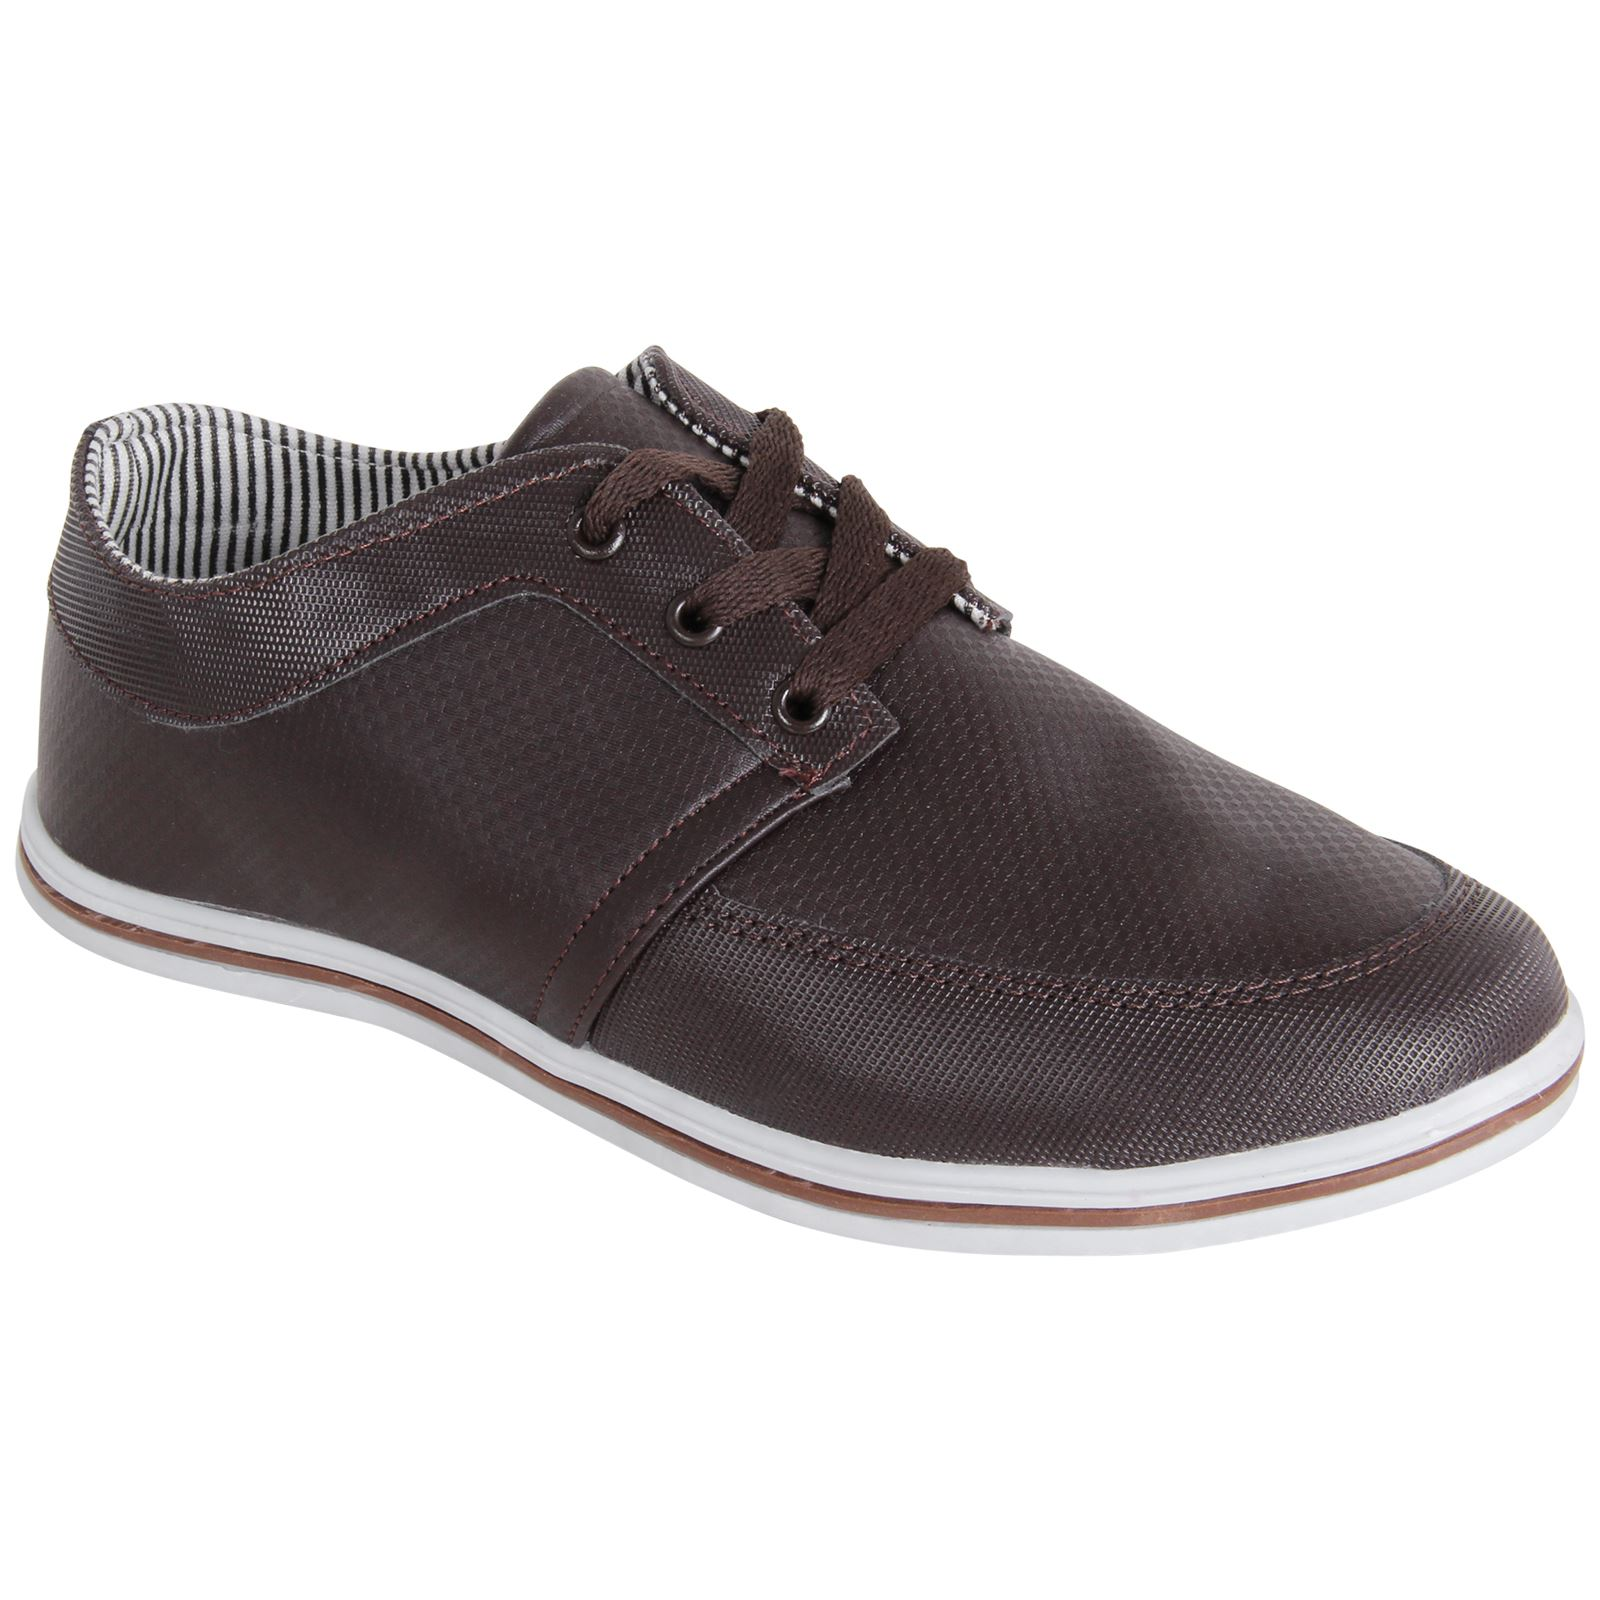 mens designer leather smart casual trainers deck boat